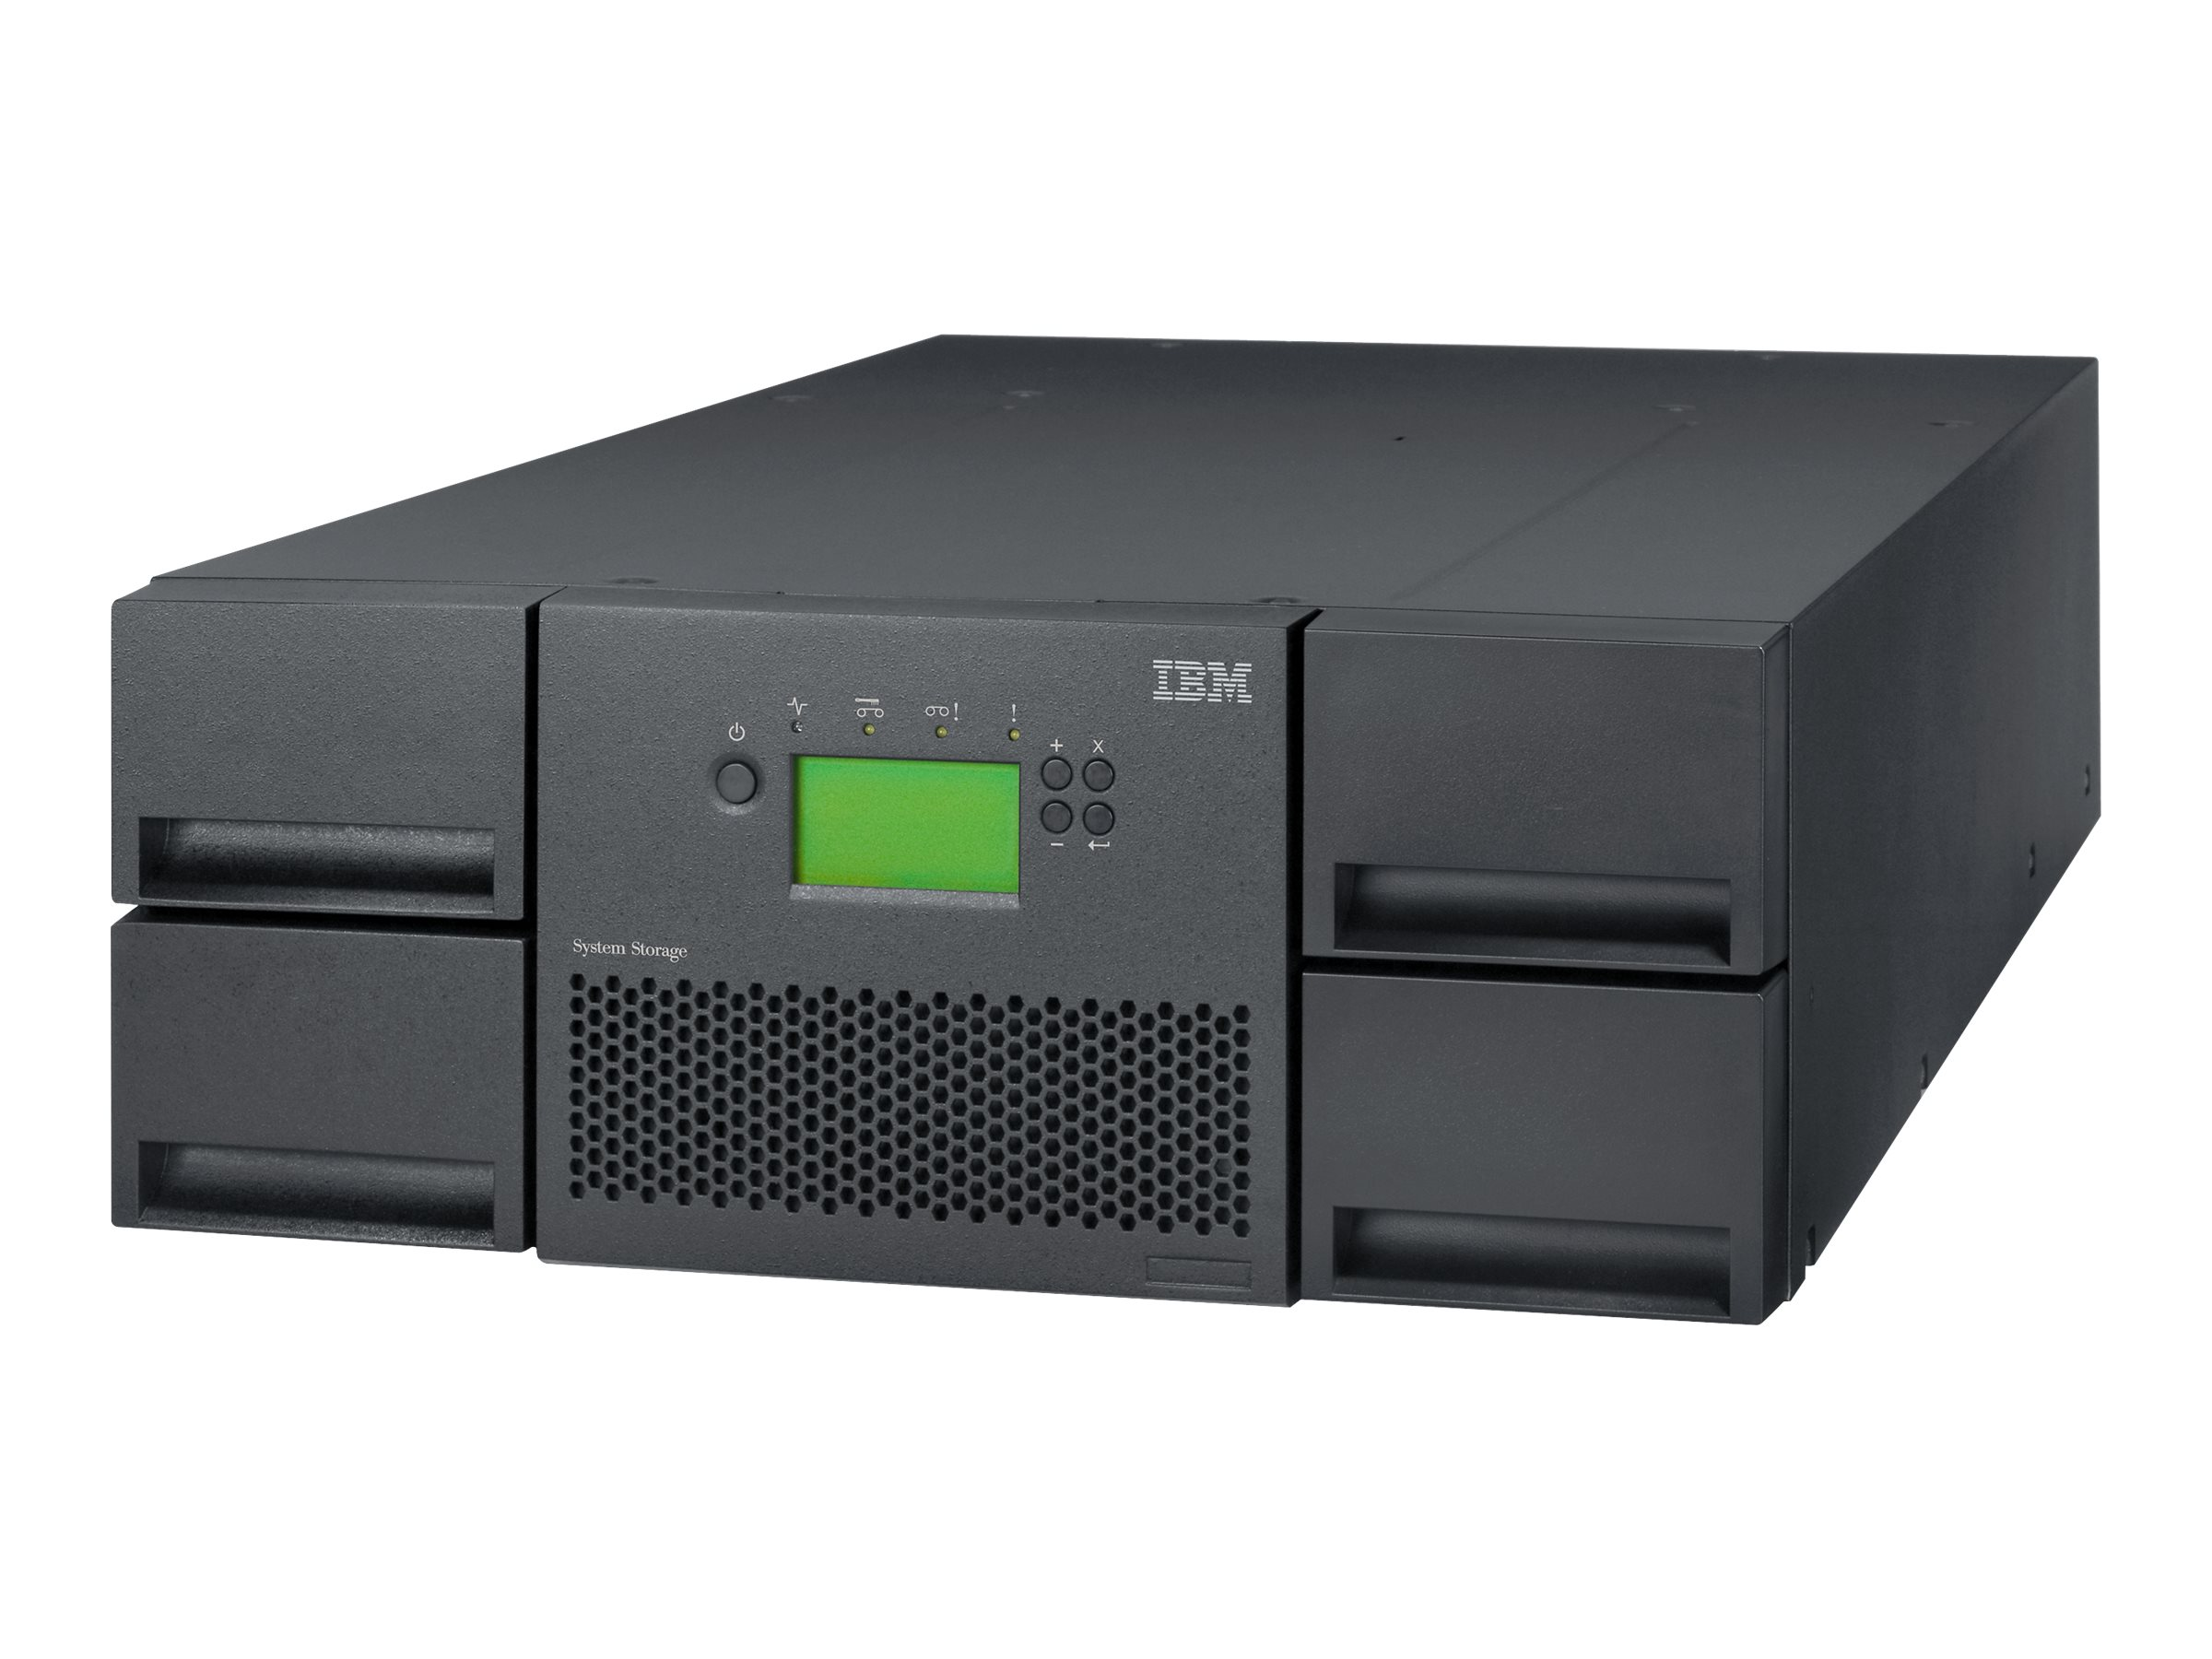 Lenovo TS3200 Model L4U Tape Library, 61734UL